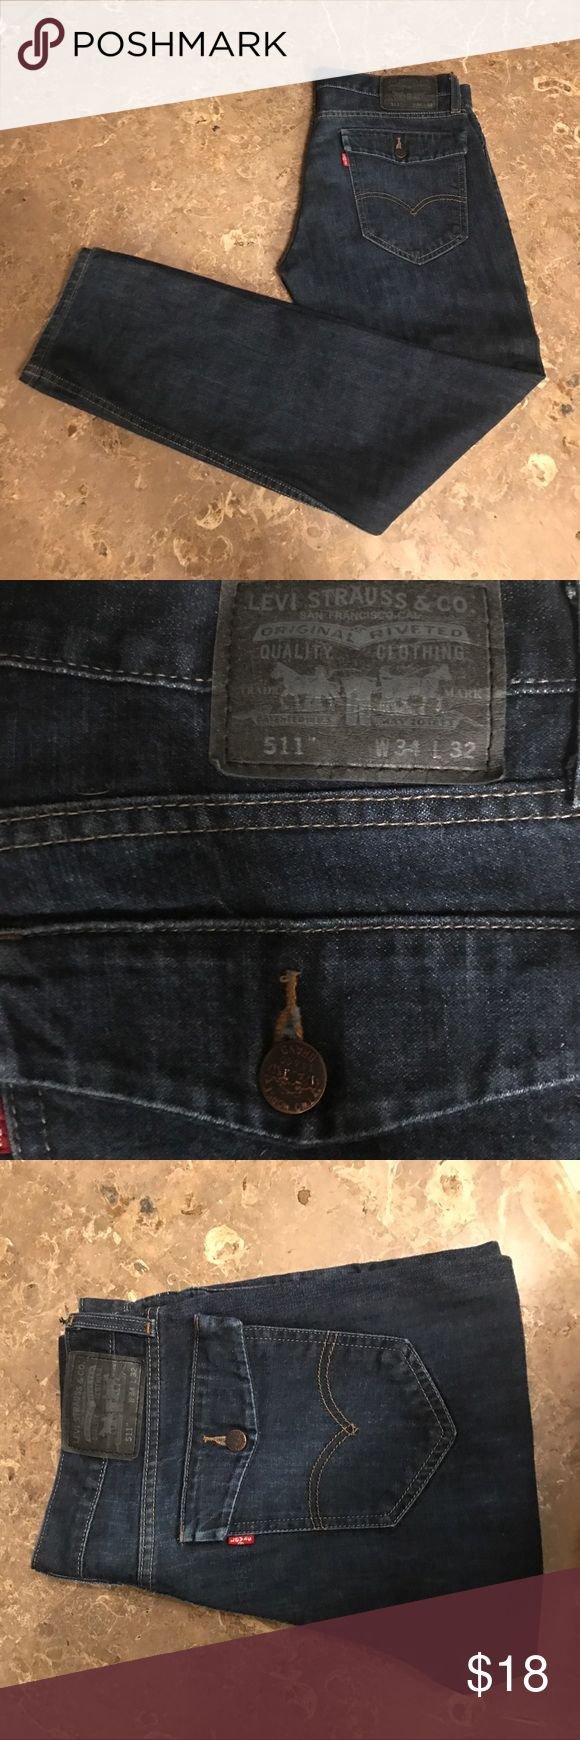 Levi's jeans 511 Levi's jeans in great condition. 34x32 Levi's Jeans Slim